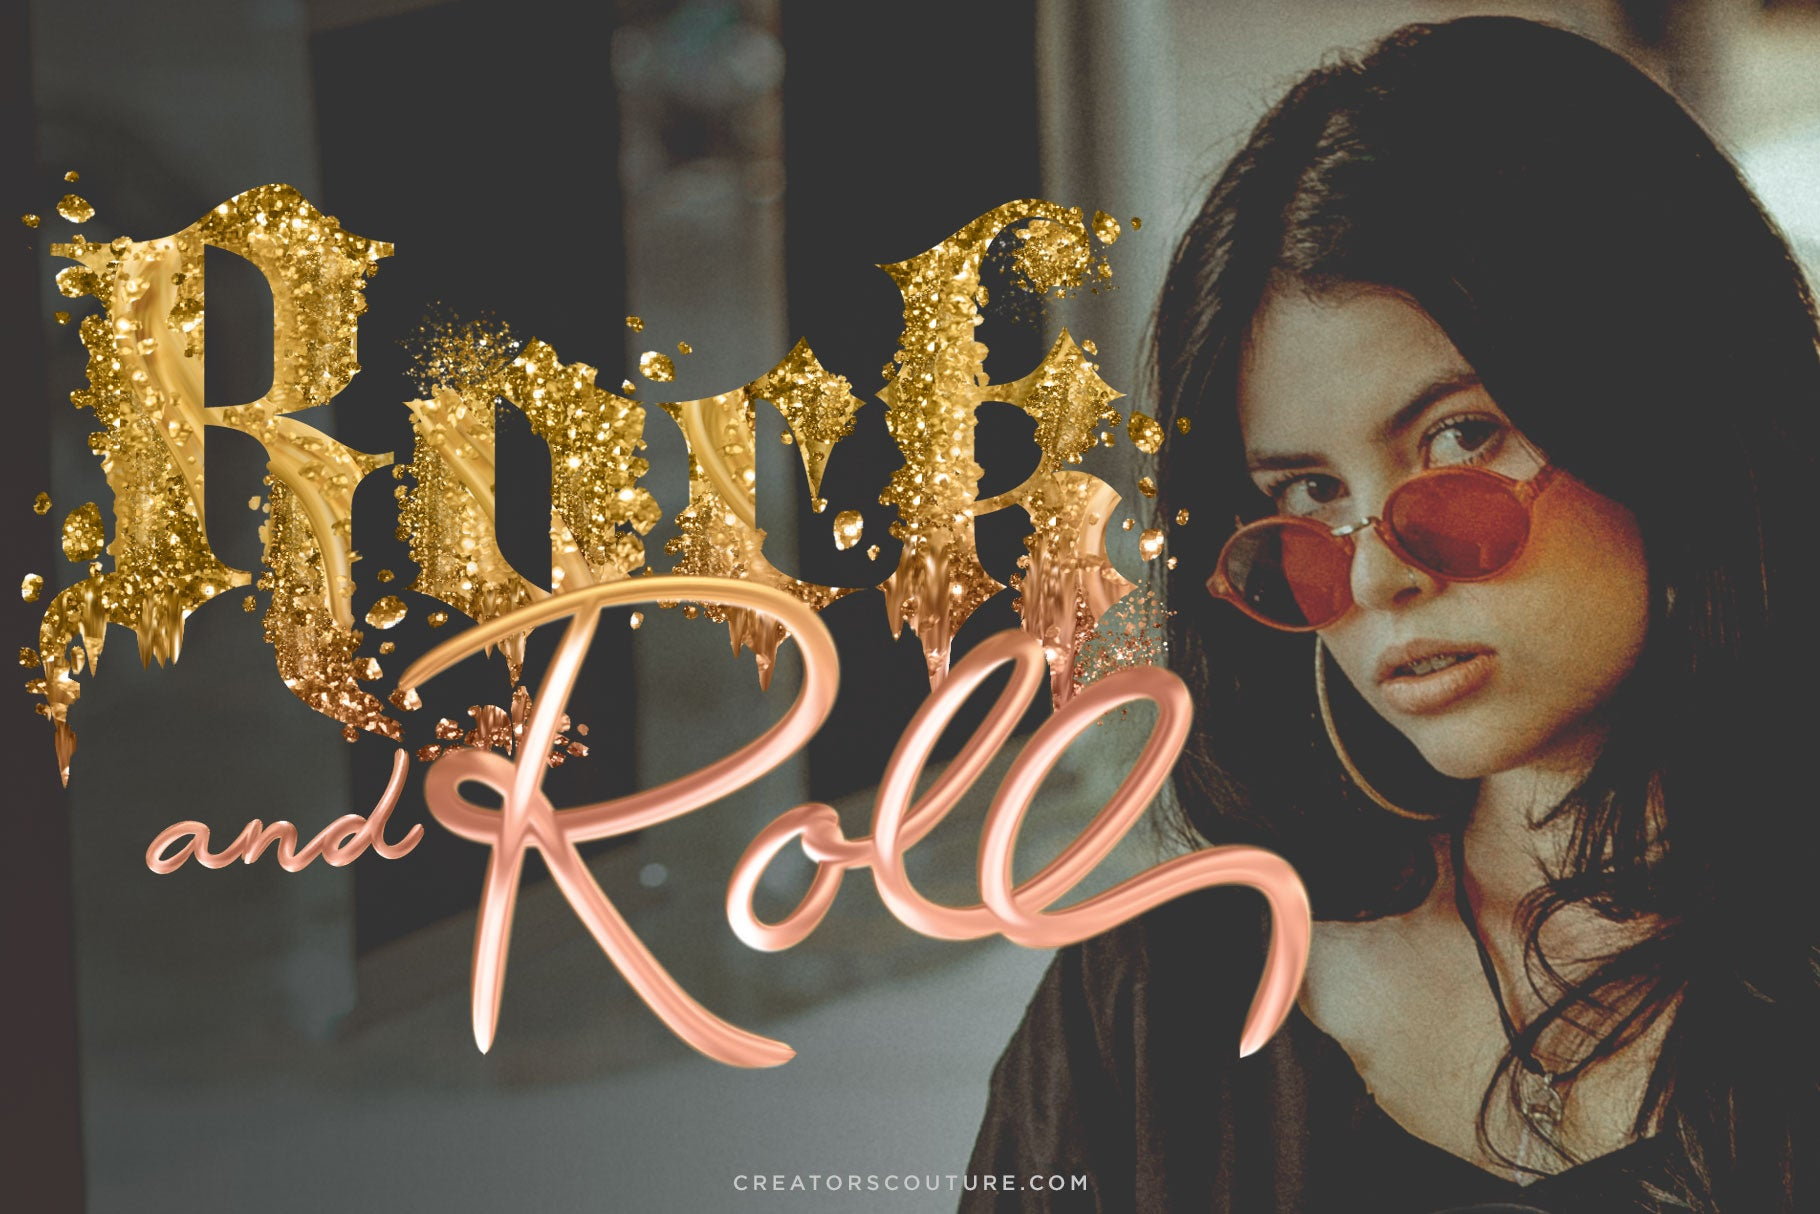 rock and roll gold letters made with photoshop brushes